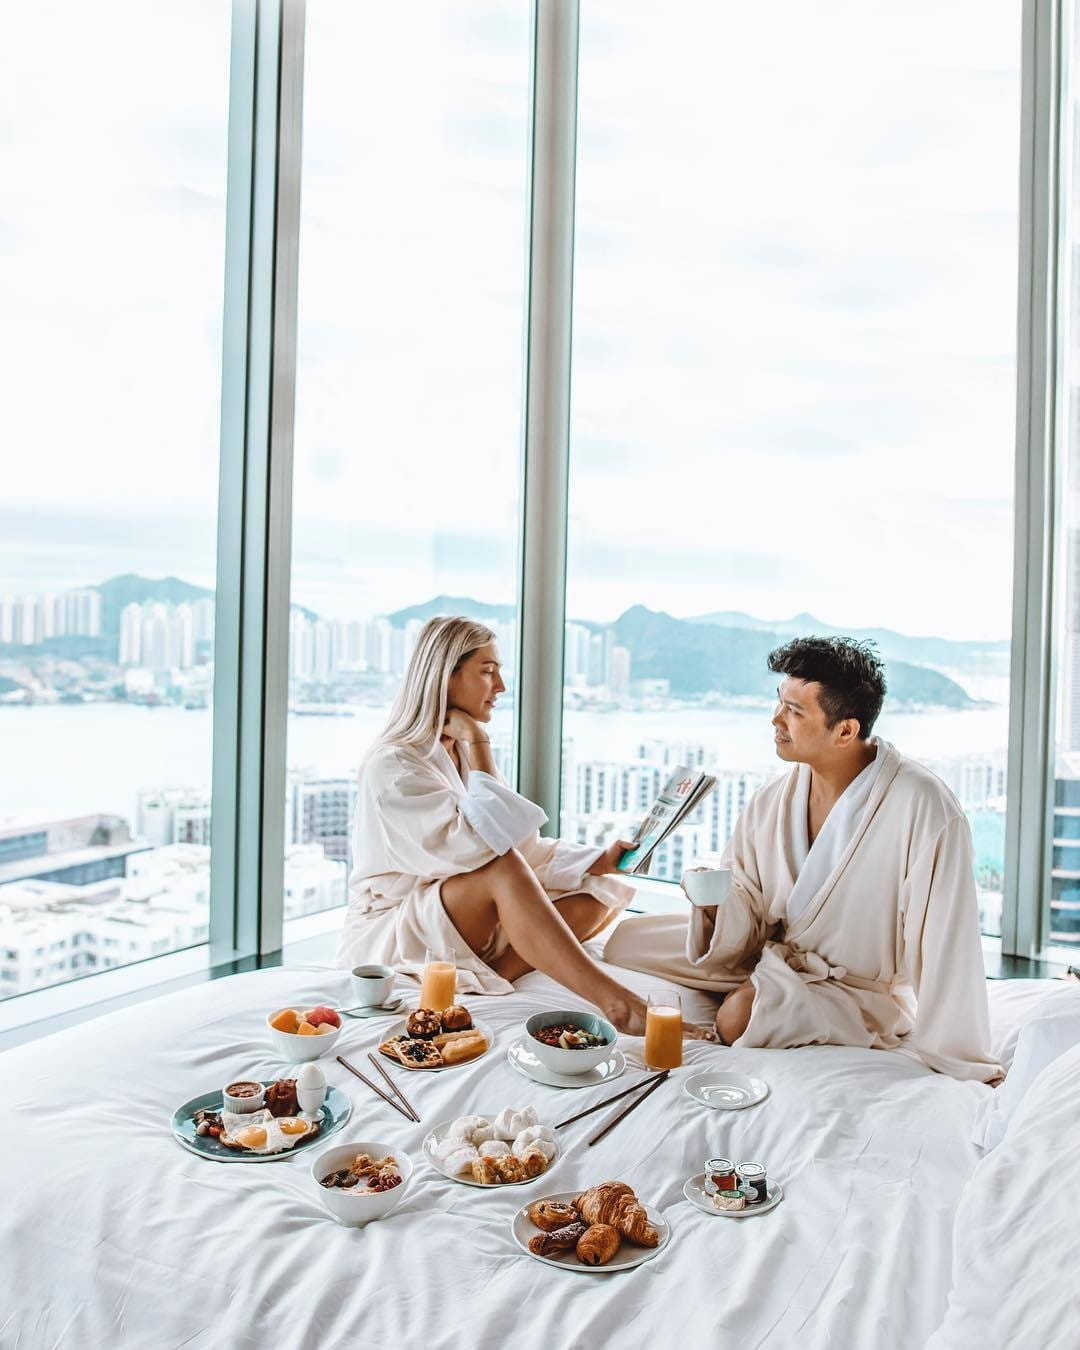 Thank you Klook for giving us the Best Romantic Hotel Award - Staycation Awards 2020! We would not have gotten the award without our guests' support.   Please tag us when you share your romantic escape #atEAST, so we know for sure you are enjoying your stay!  #StayatEAST #EASTHongKong  📷: @barbieandpanda